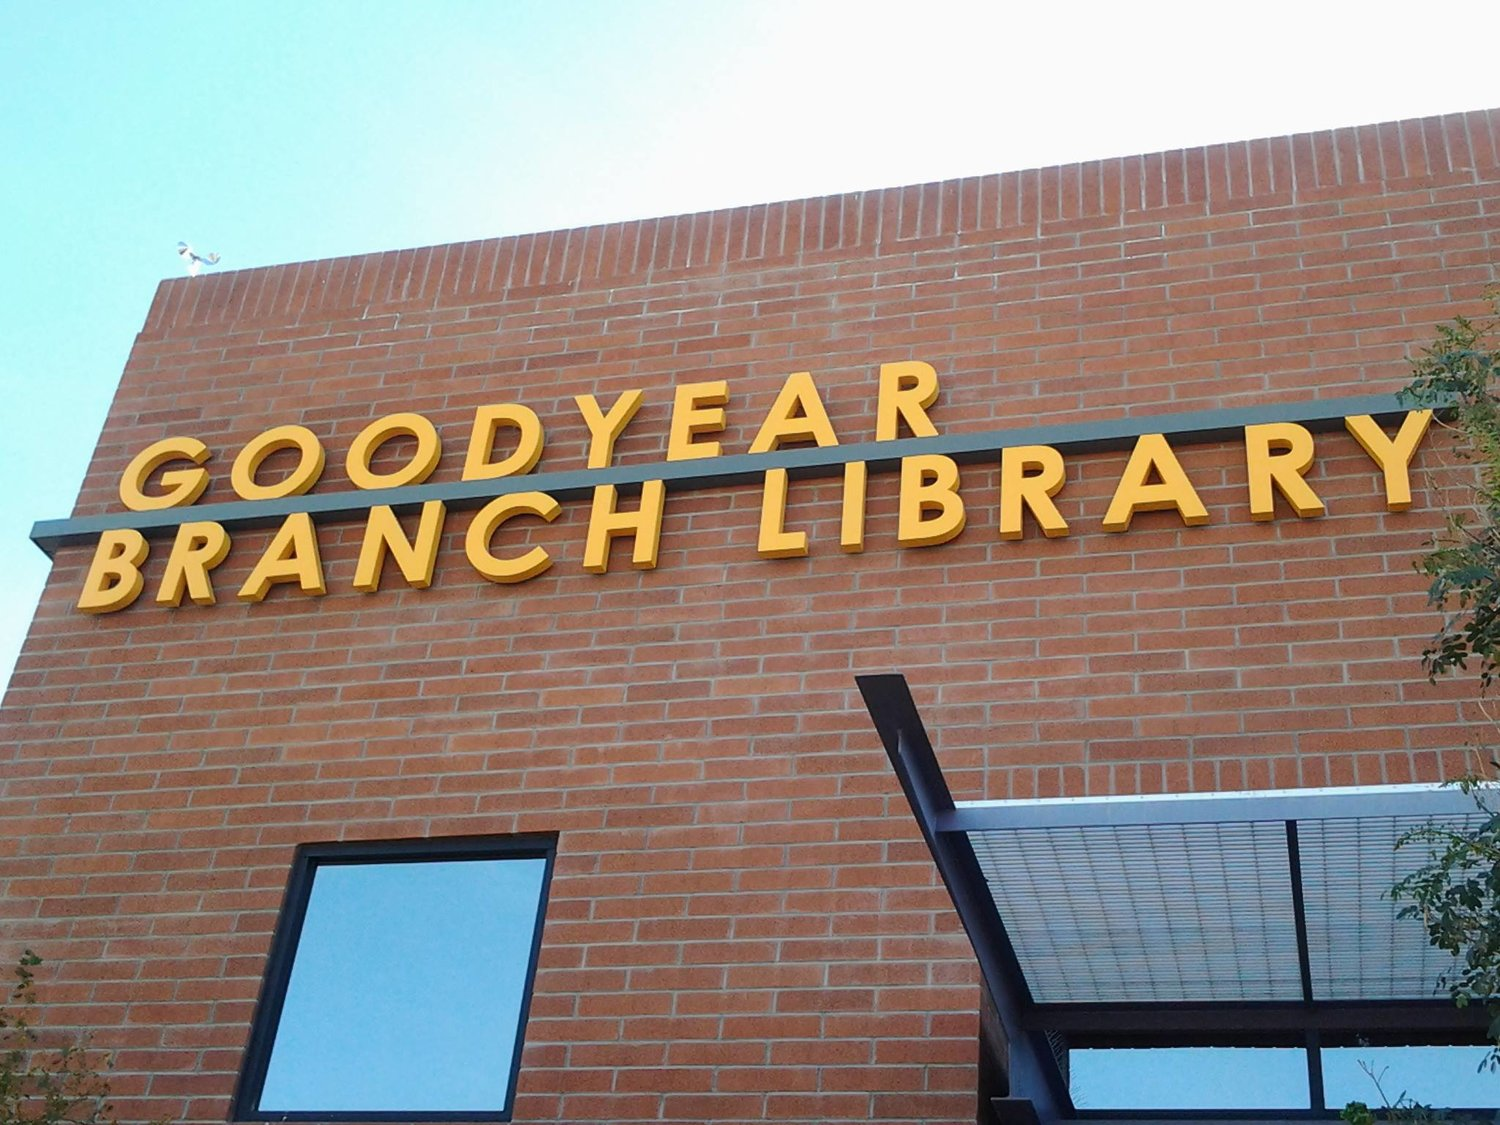 Goodyear Branch Library is in Suite C101 in the city's municipal complex at 14455 Van Buren St.